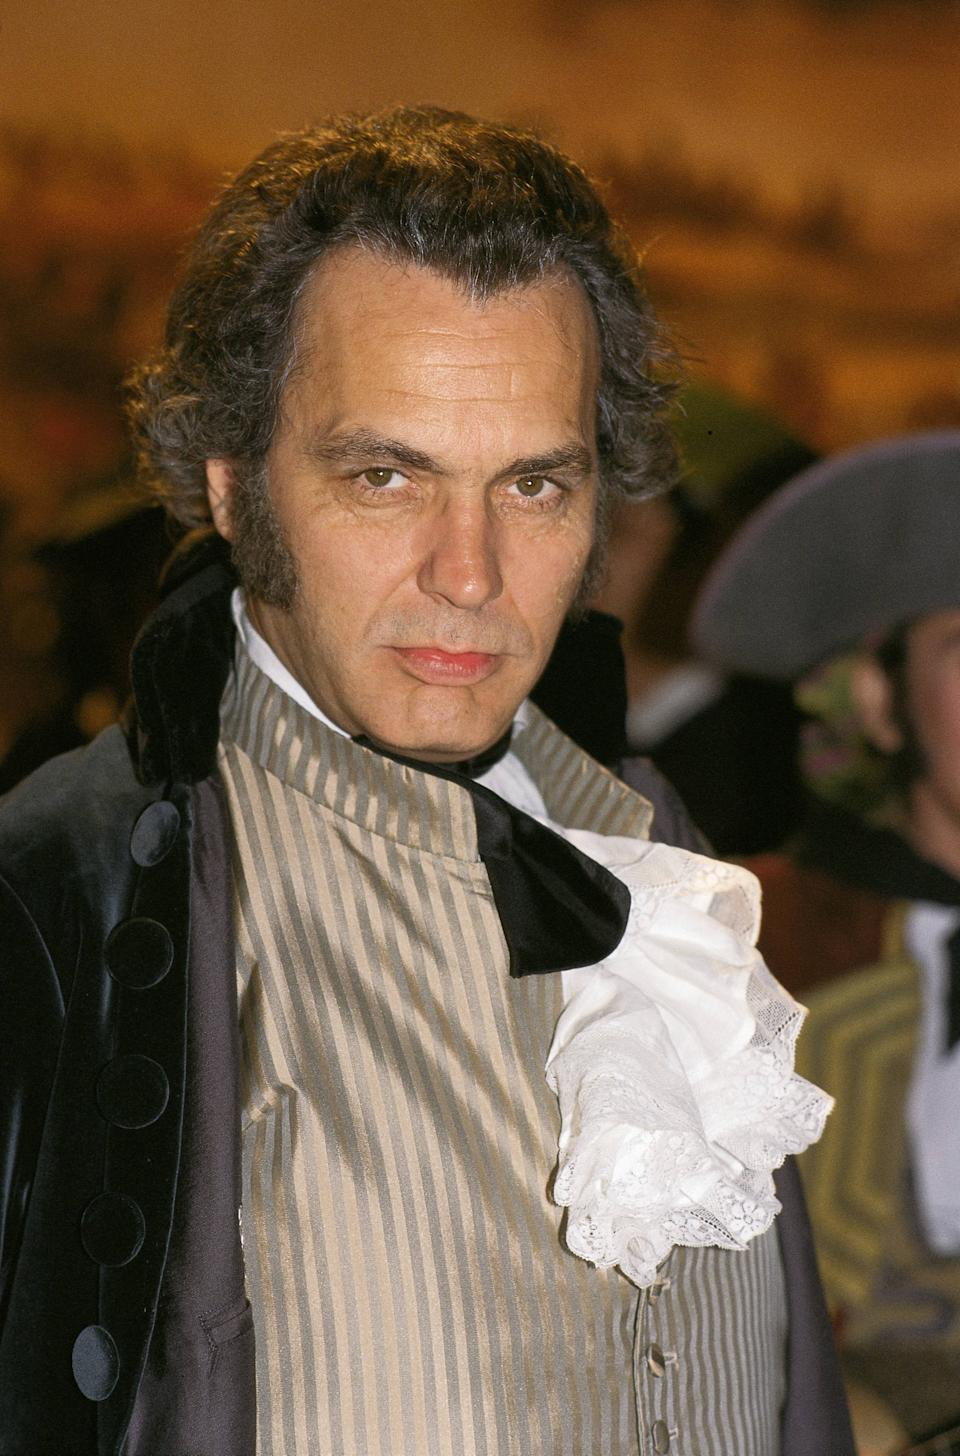 Jose Coronado at the shooting set of 'Goya in Bordeaux' The actor as the painter Francisco de Goya at the shooting set of Carlos Saura´s film  (Photo by Quim Llenas/Cover/Getty Images)